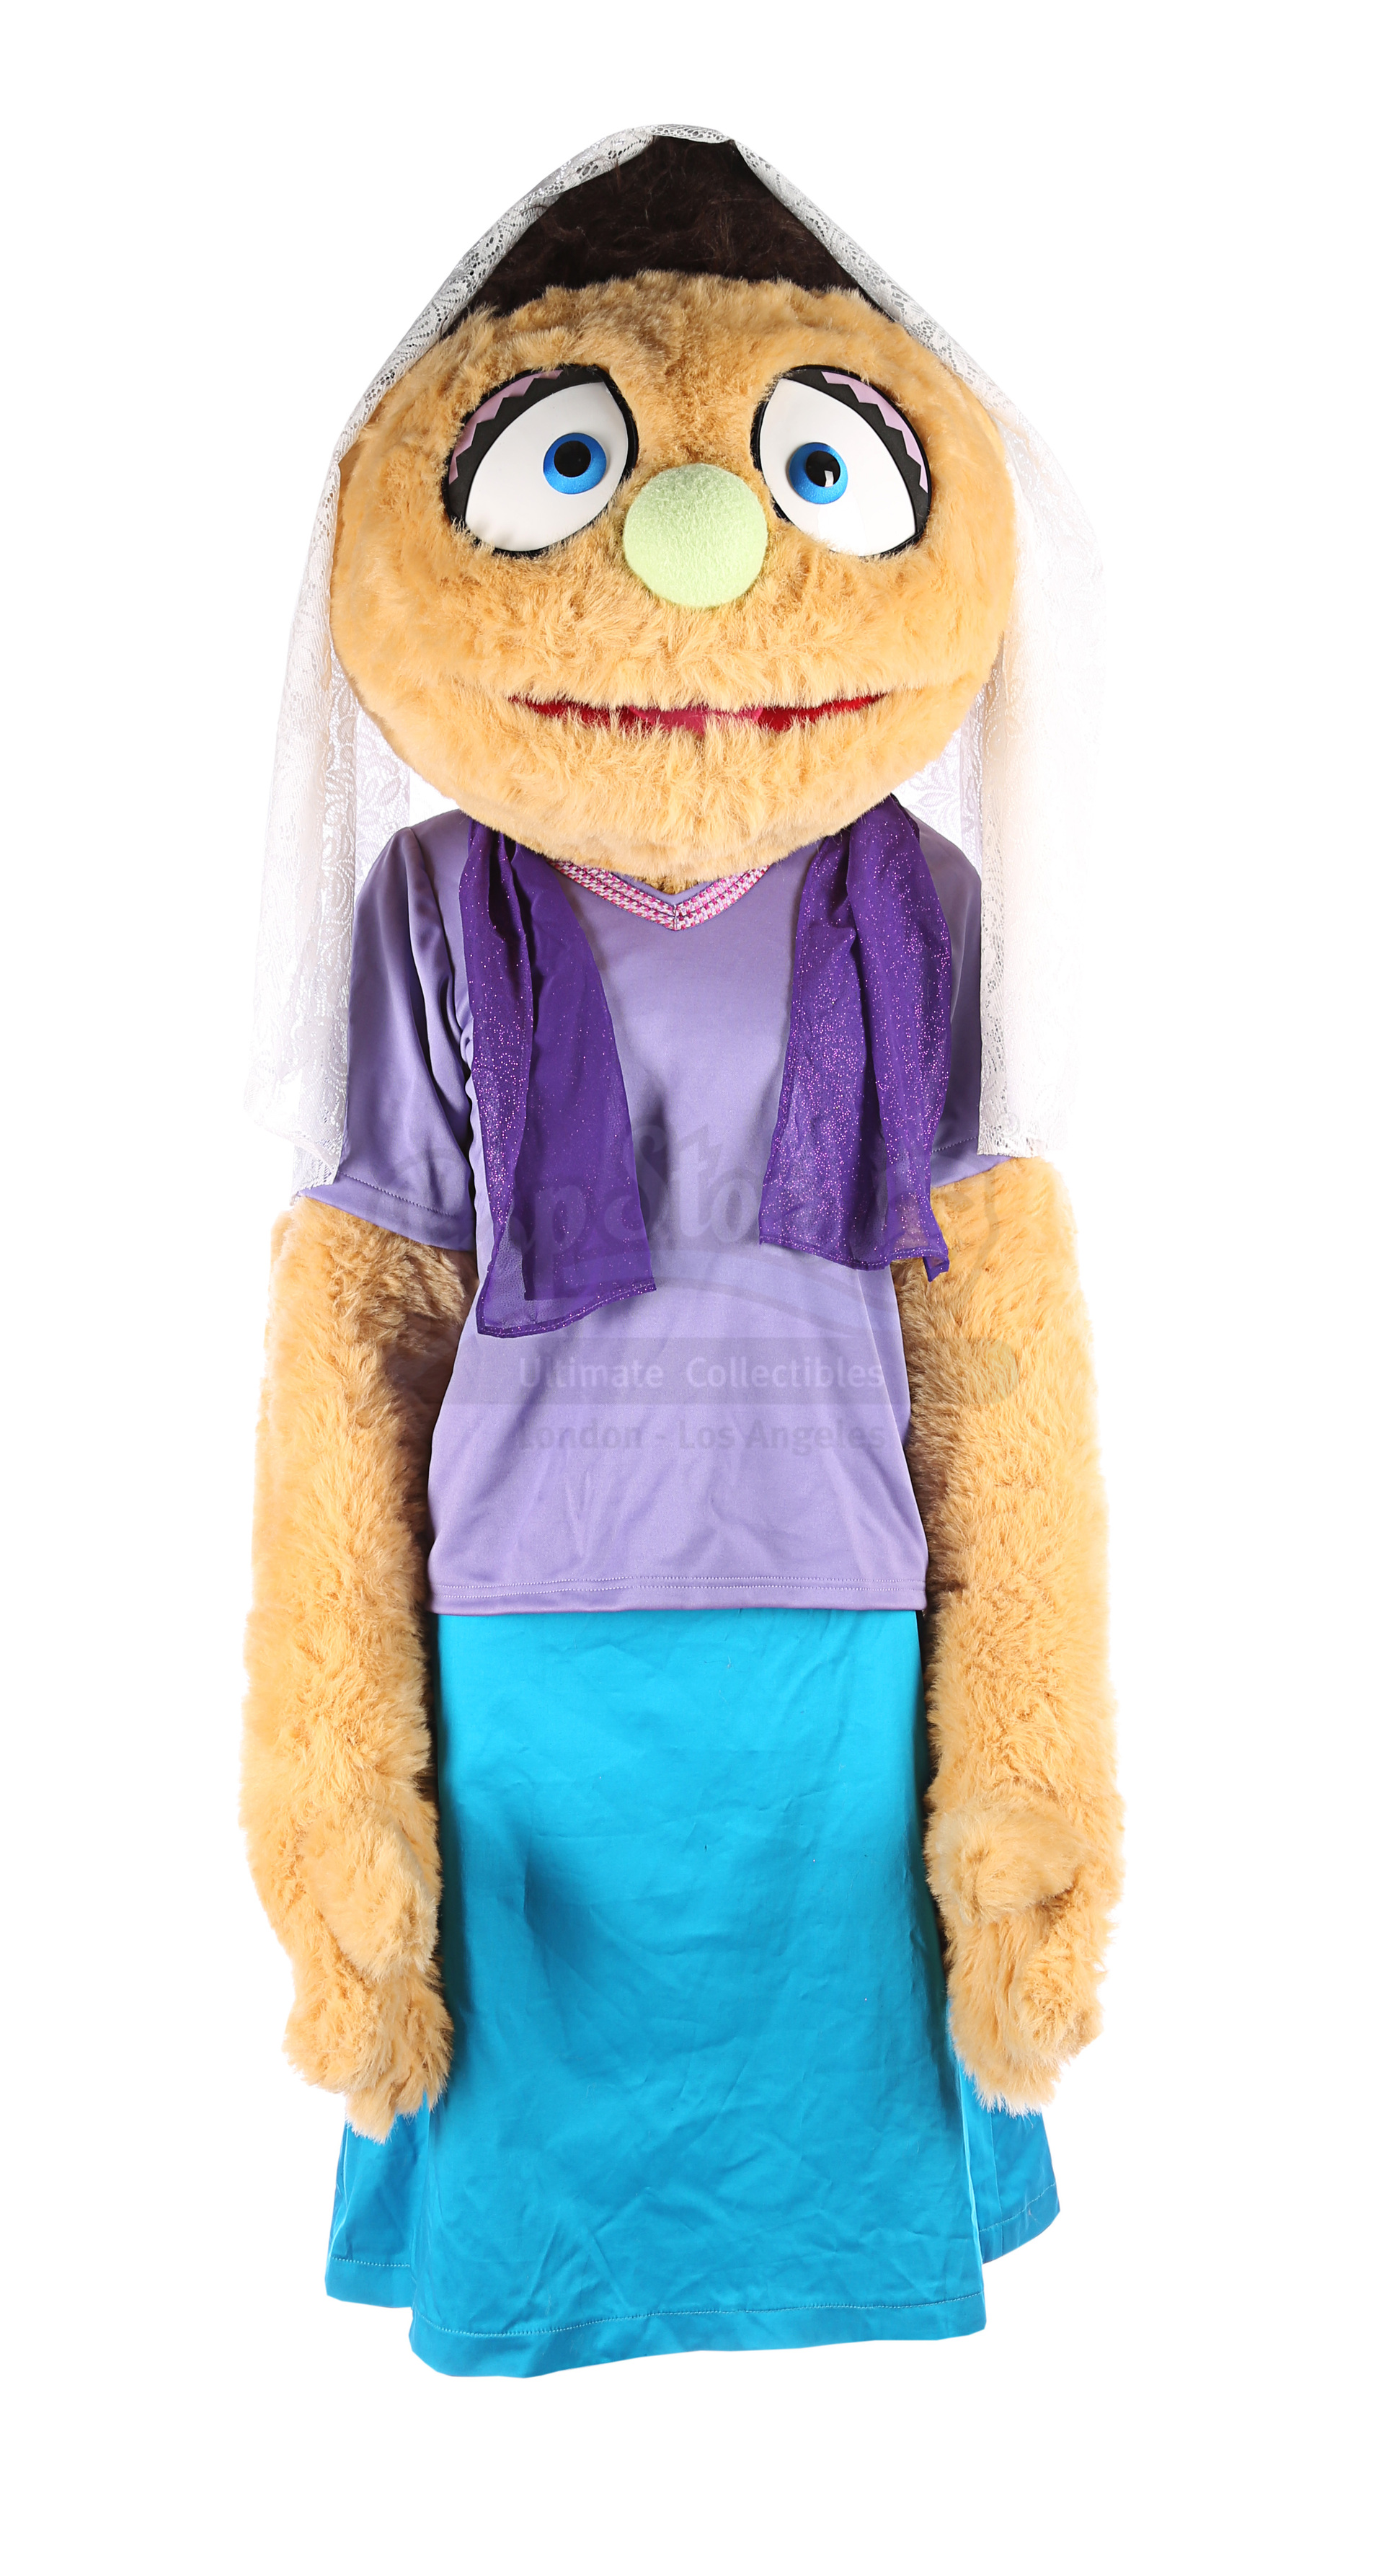 AVENUE Q (STAGE SHOW) - Wedding Puppet Collection: Kate Monster, Nicky, Princeton, Rod, Kate Monster - Image 18 of 23